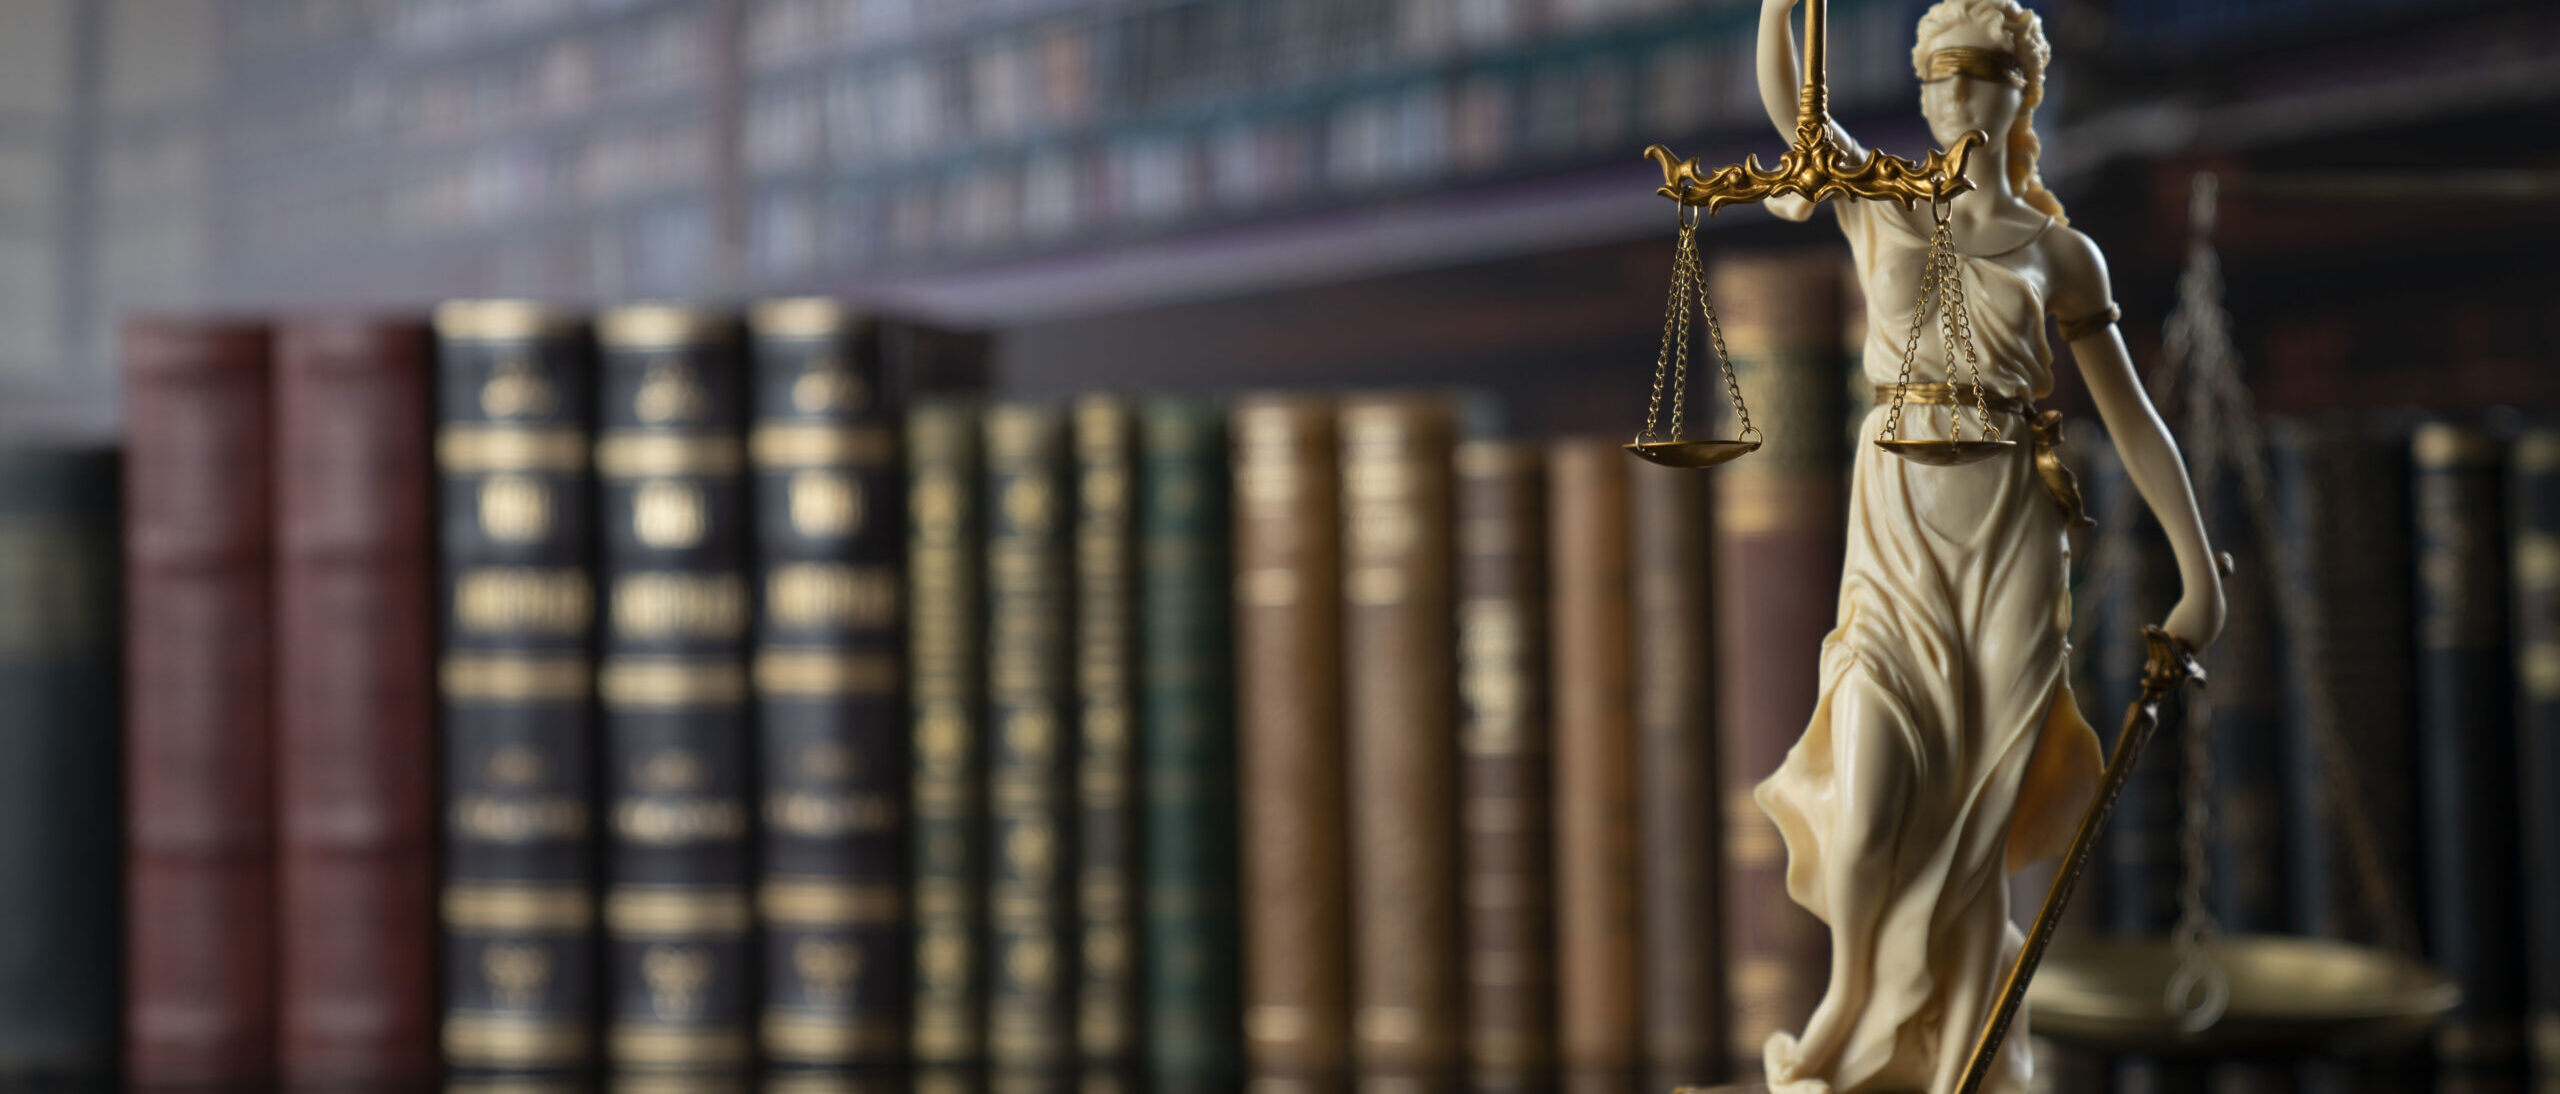 Judge, justice concept background.  Symbol of justice – Themis in the old university library.